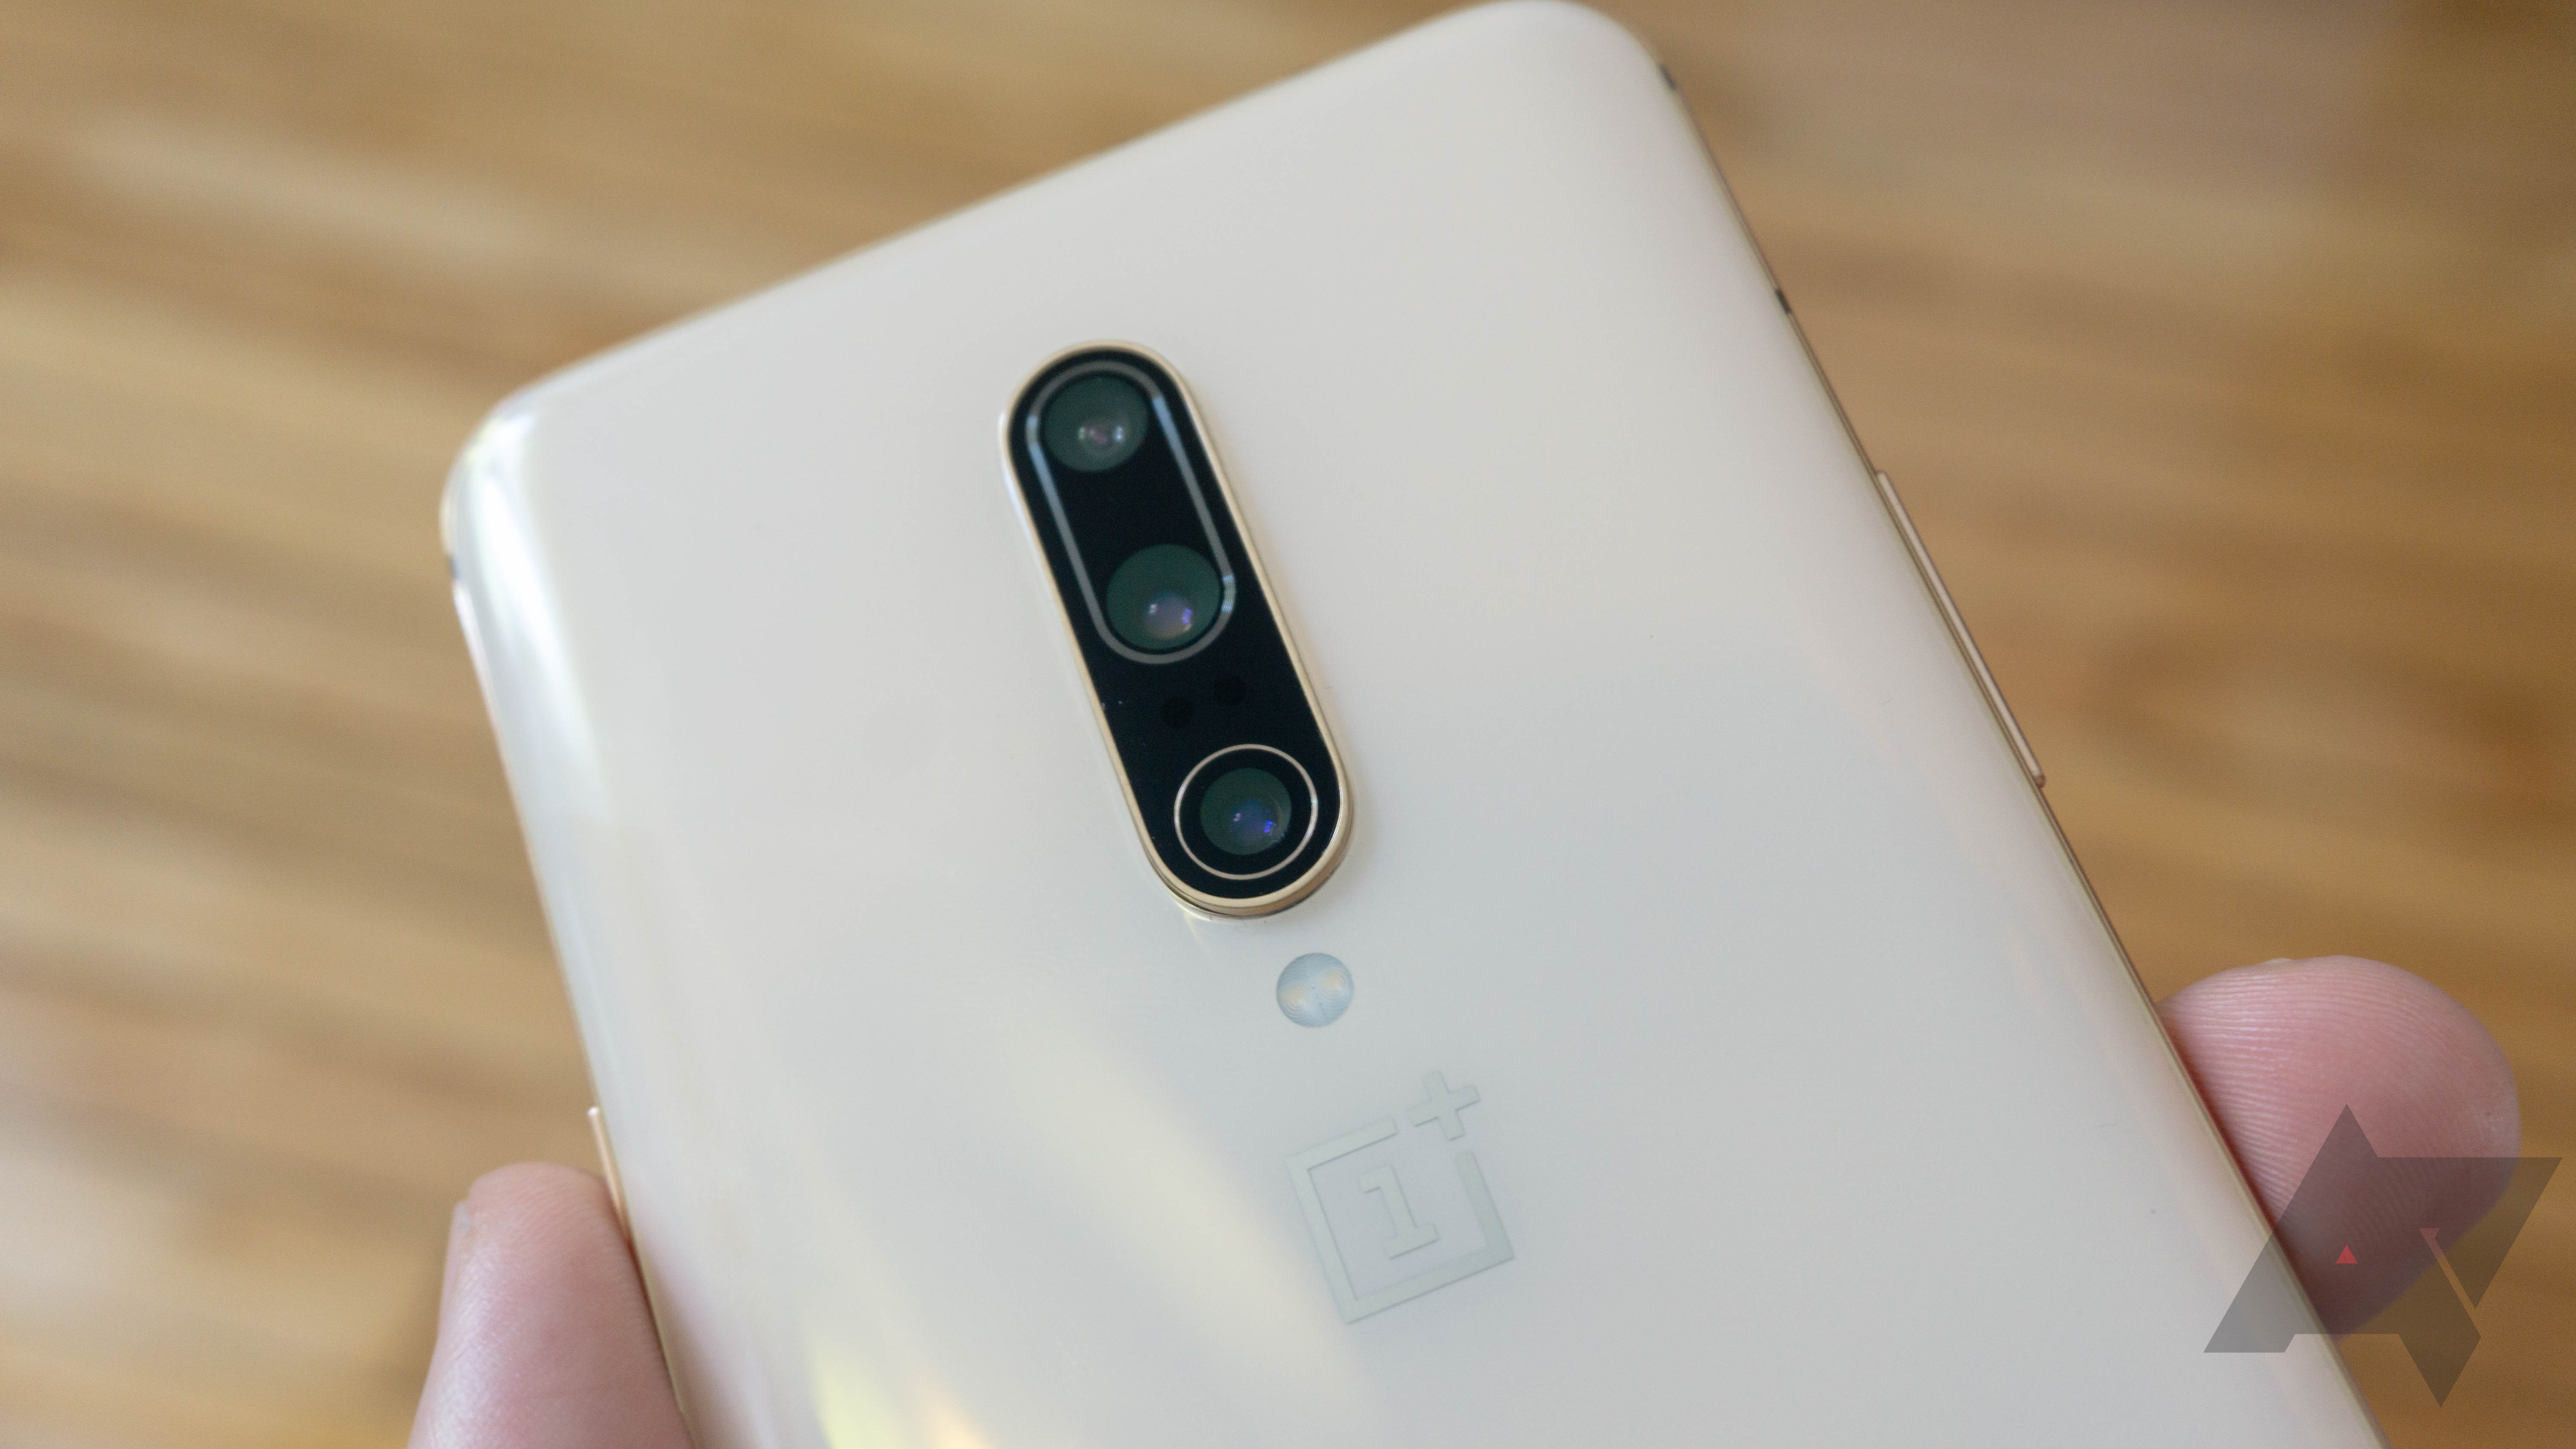 OnePlus 7 Pro available in limited edition Almond color